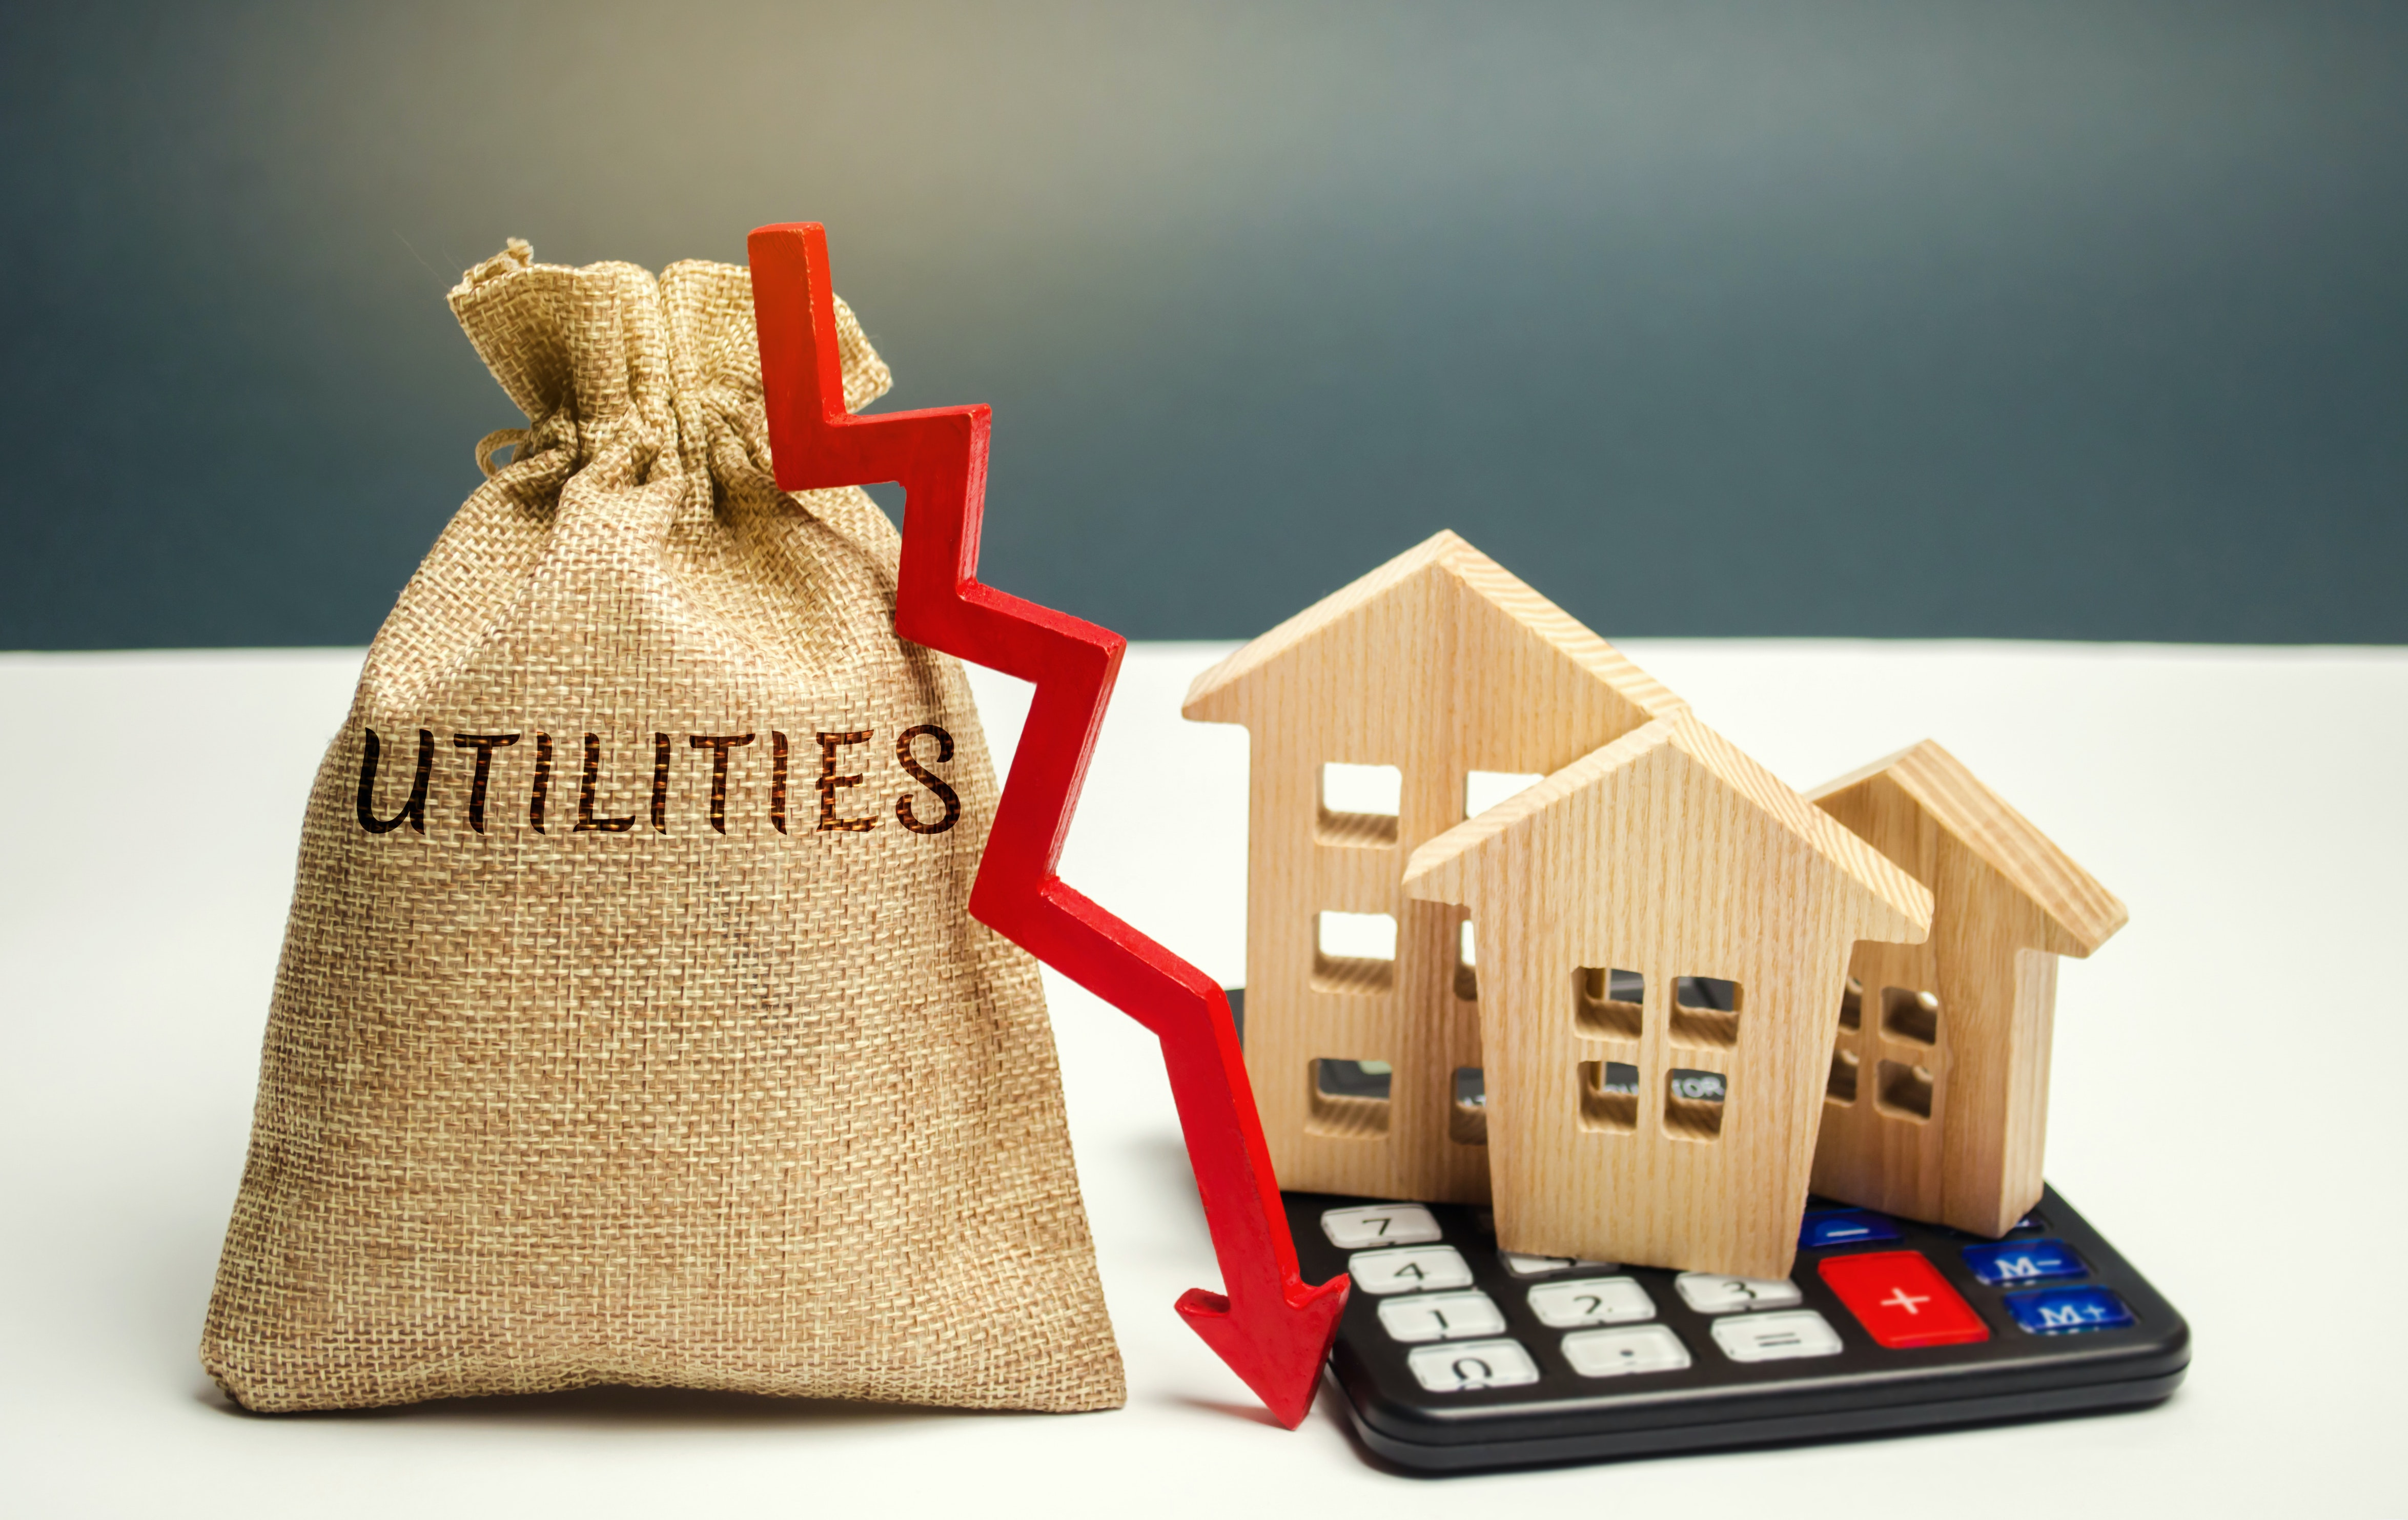 Representation of utility costs fluctuating for households